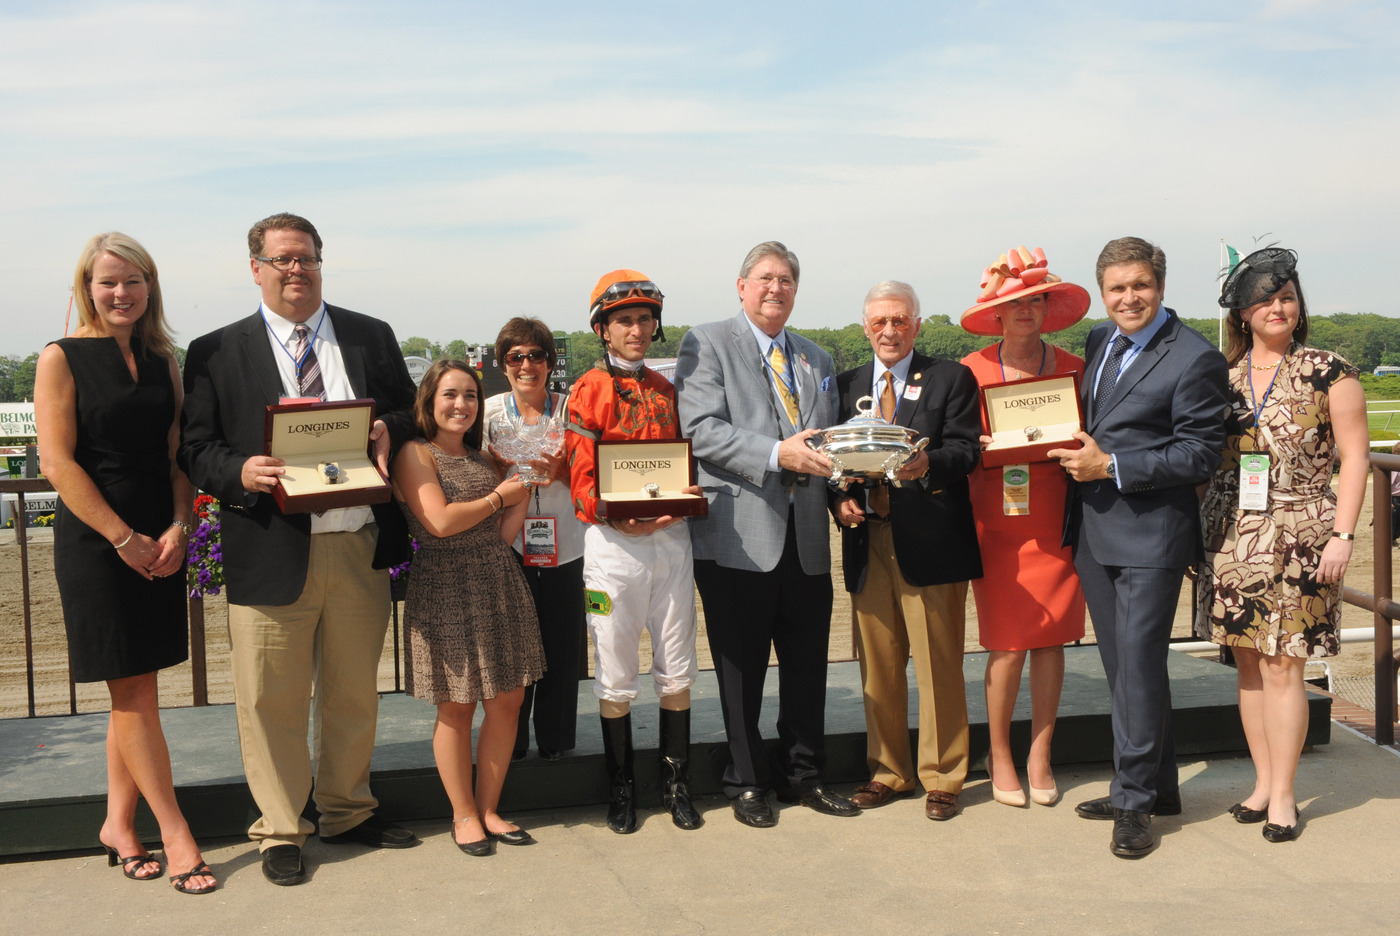 Longines Flat Racing Event: Longines, Official Watch of the 2012 Belmont Stakes 3